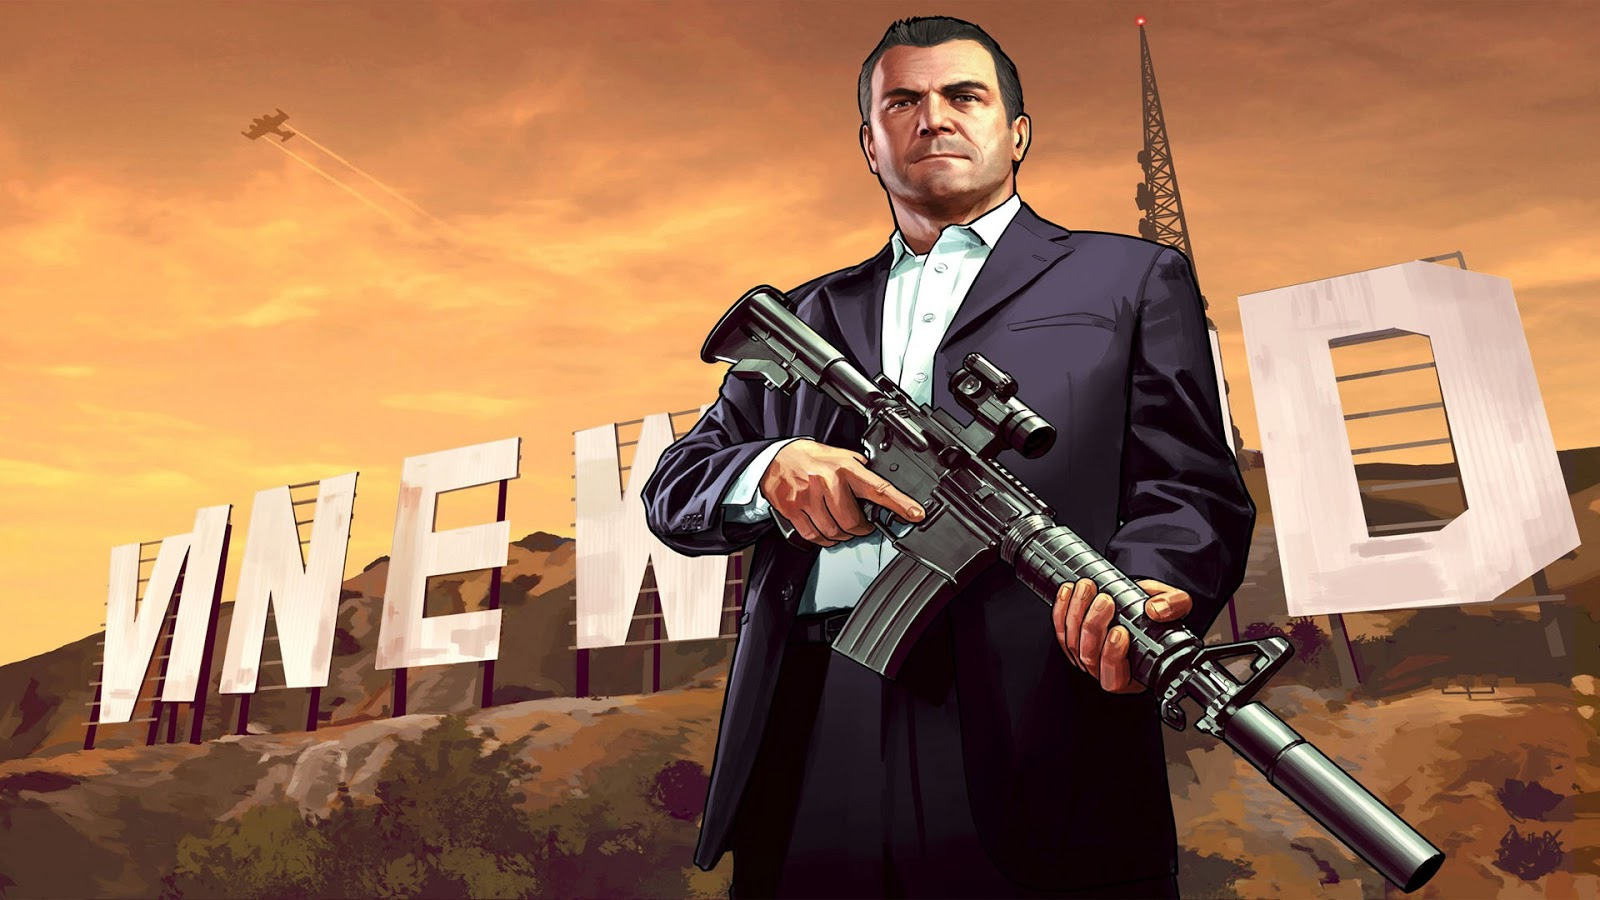 hd gta wallpaper gta 4 wallpaper gta sa wallpaper gta 1600x900